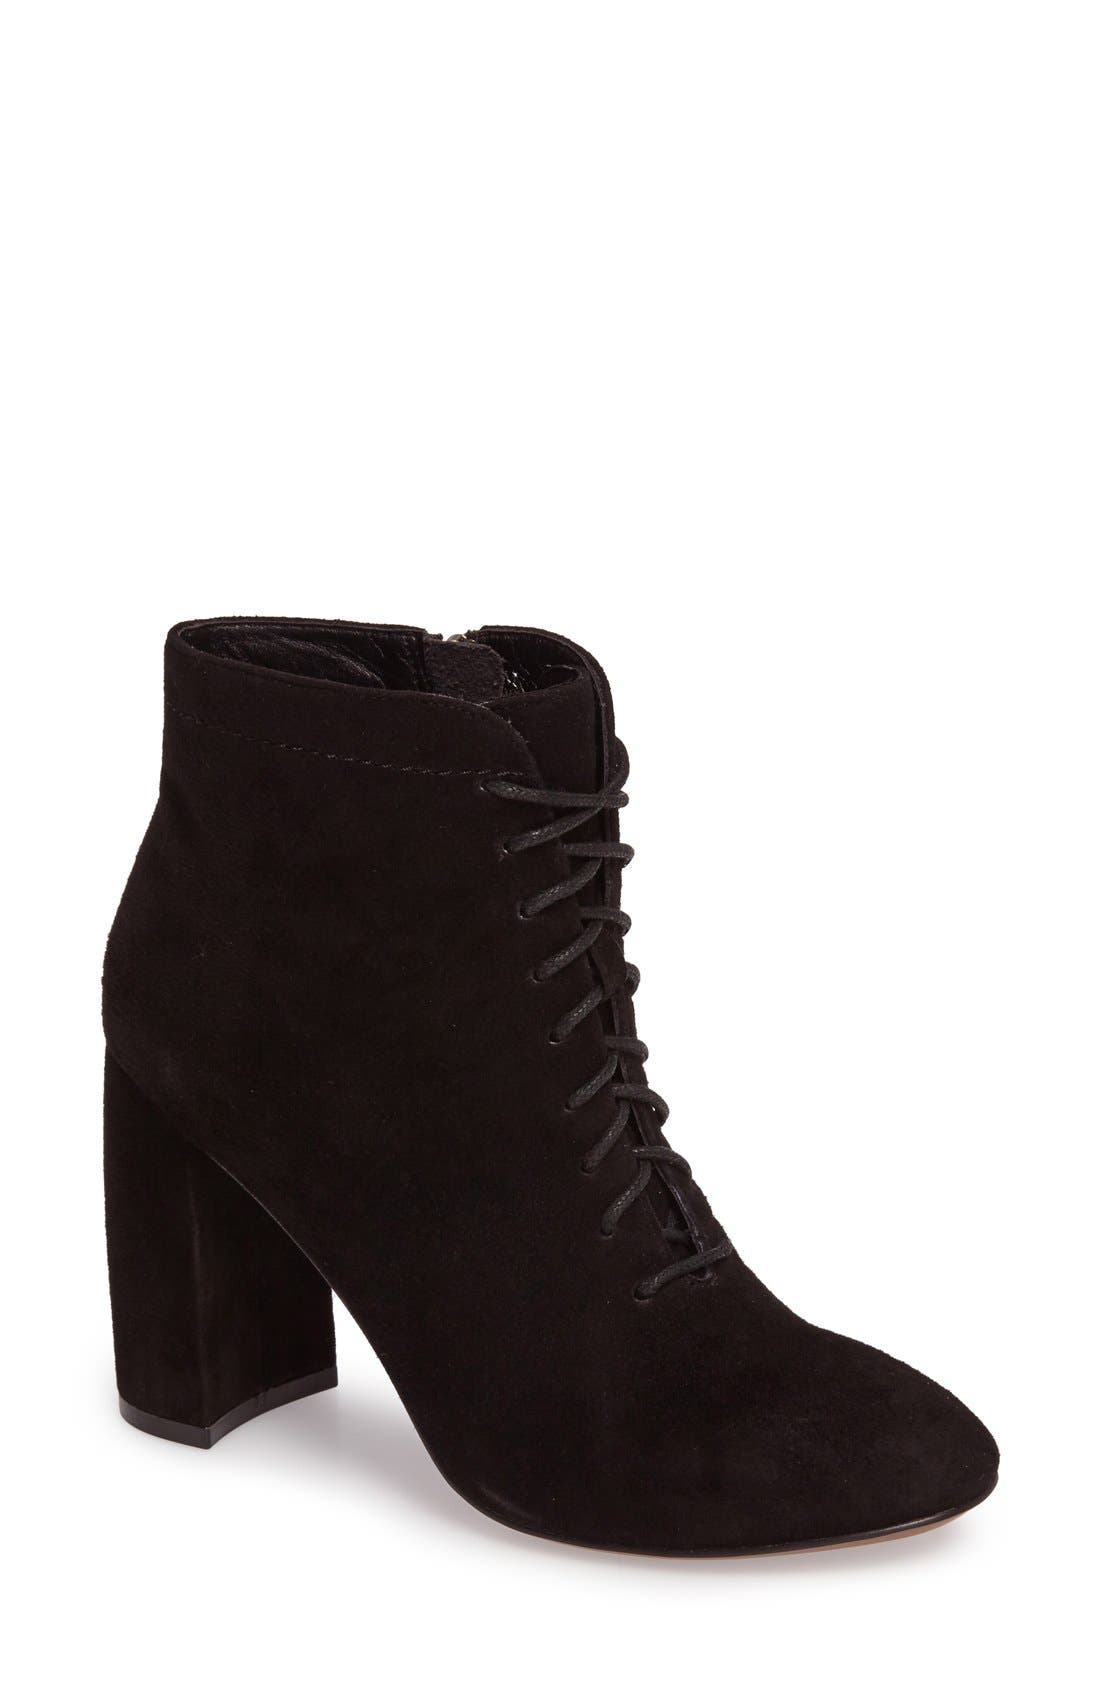 Alternate Image 1 Selected - Linea Paolo Brandy Lace-Up Zip Bootie (Women)